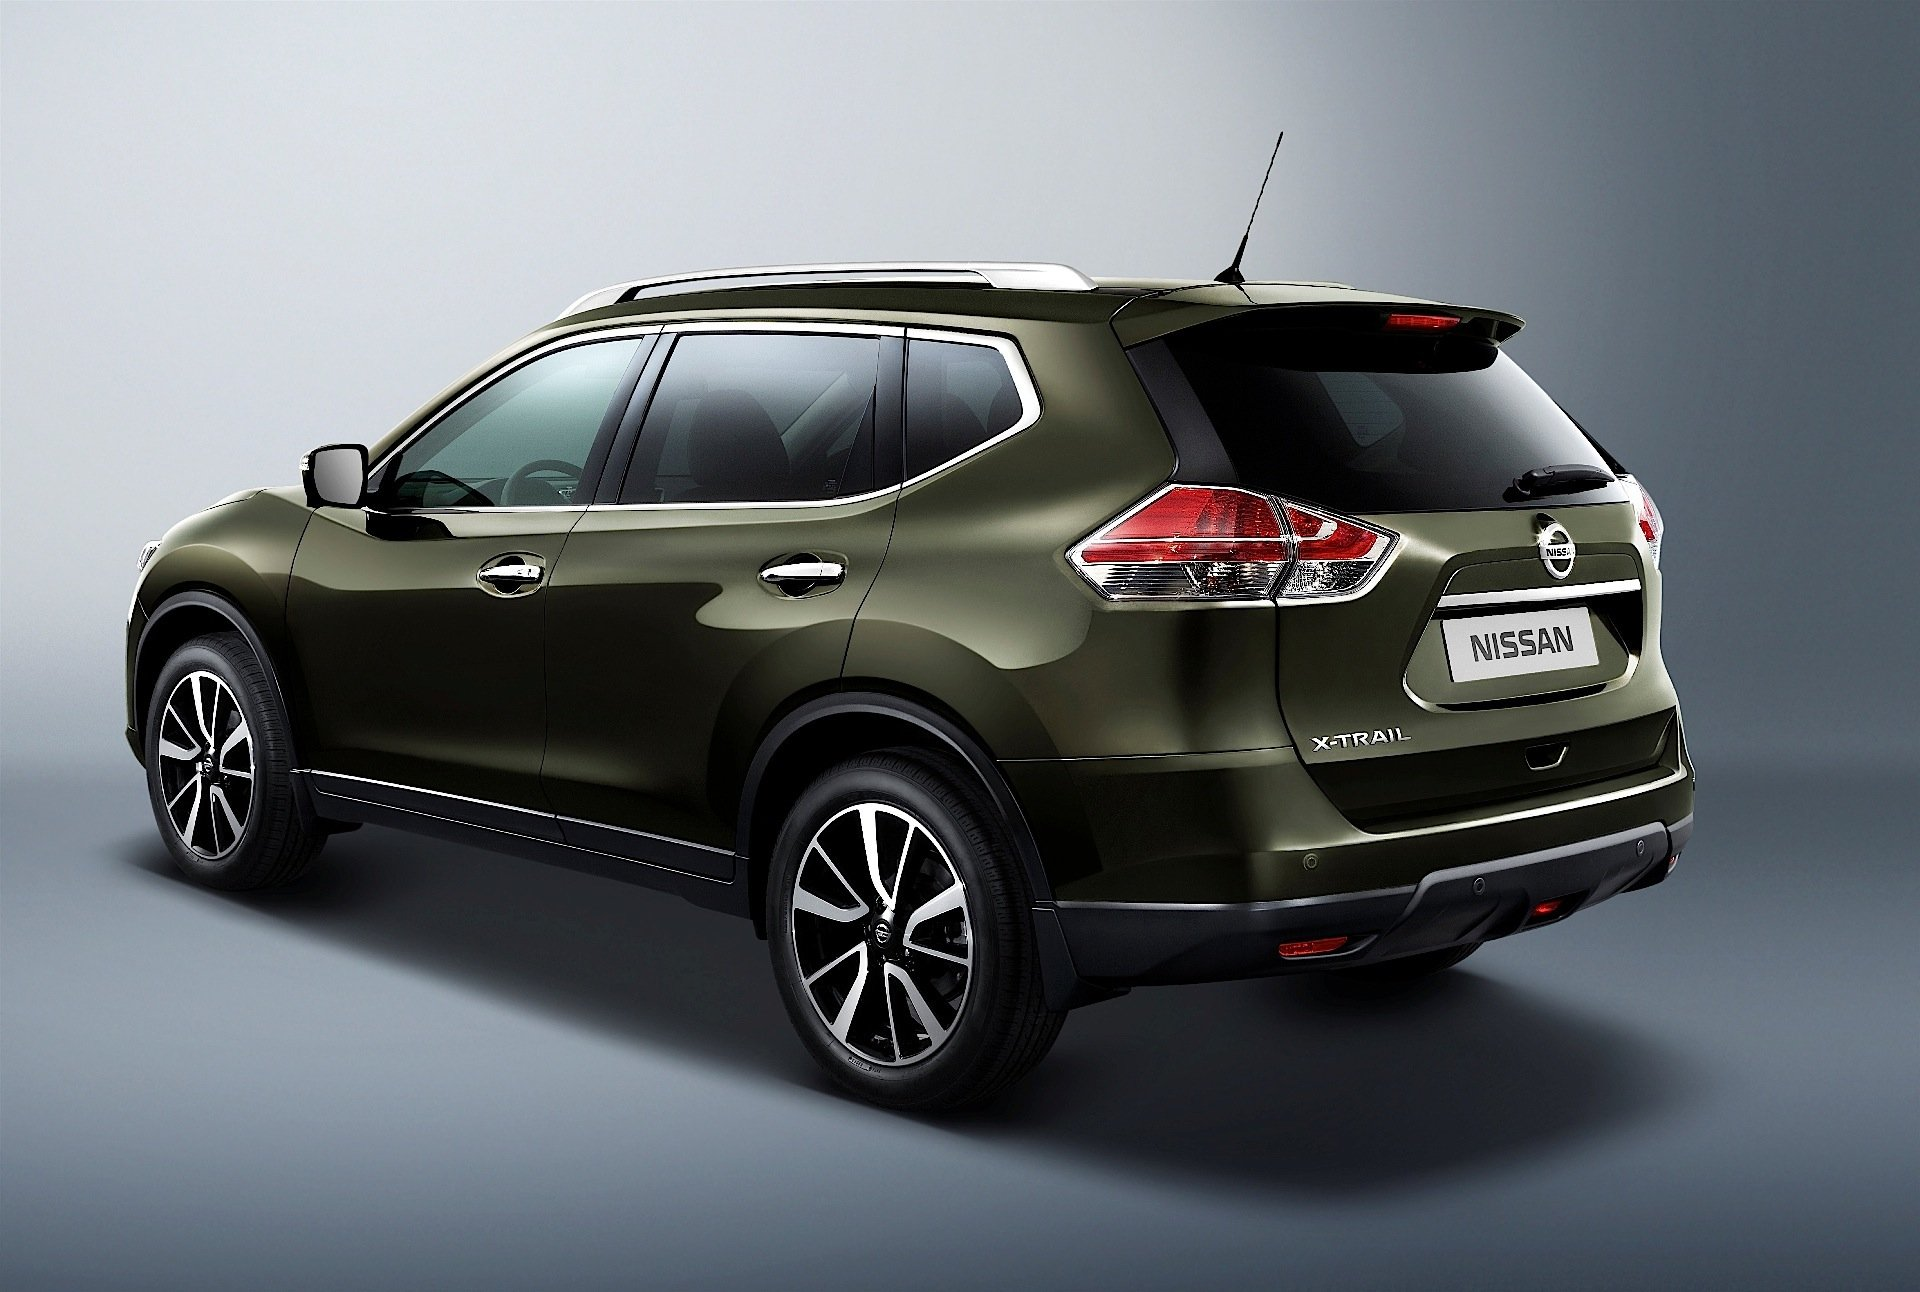 Pictures of nissan x-trail #1